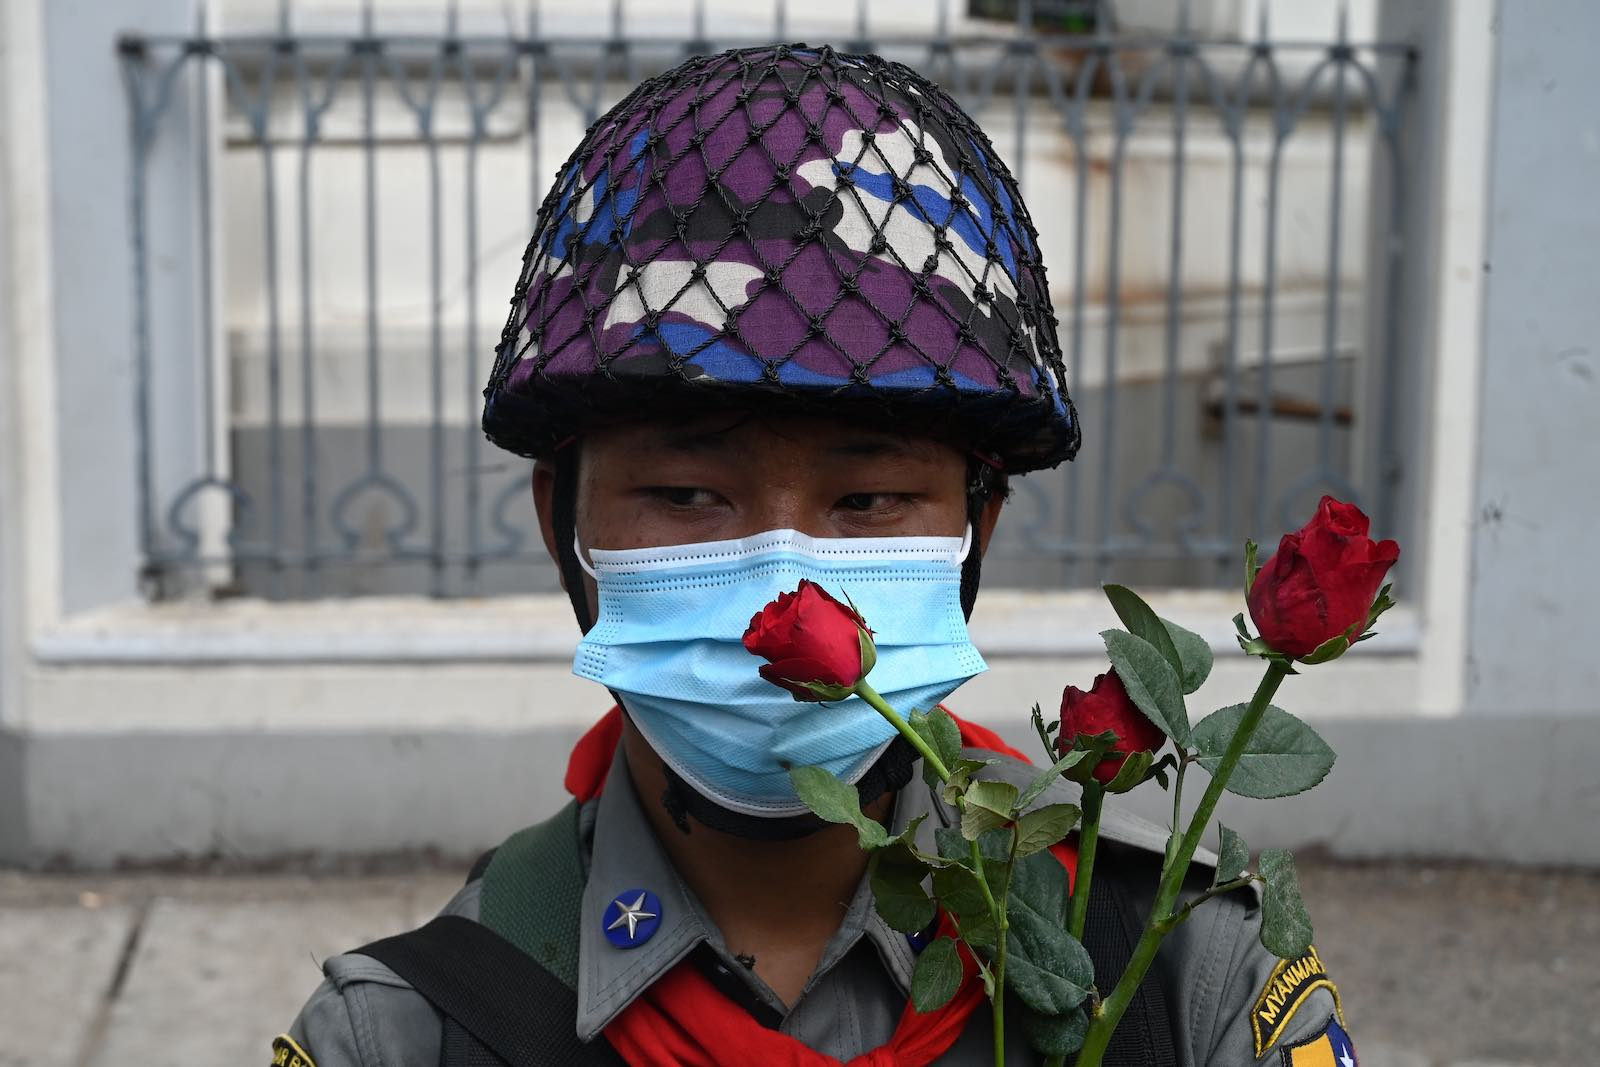 A policeman during a demonstration against the military coup, Yangon, 7 February (STR/AFP via Getty Images)